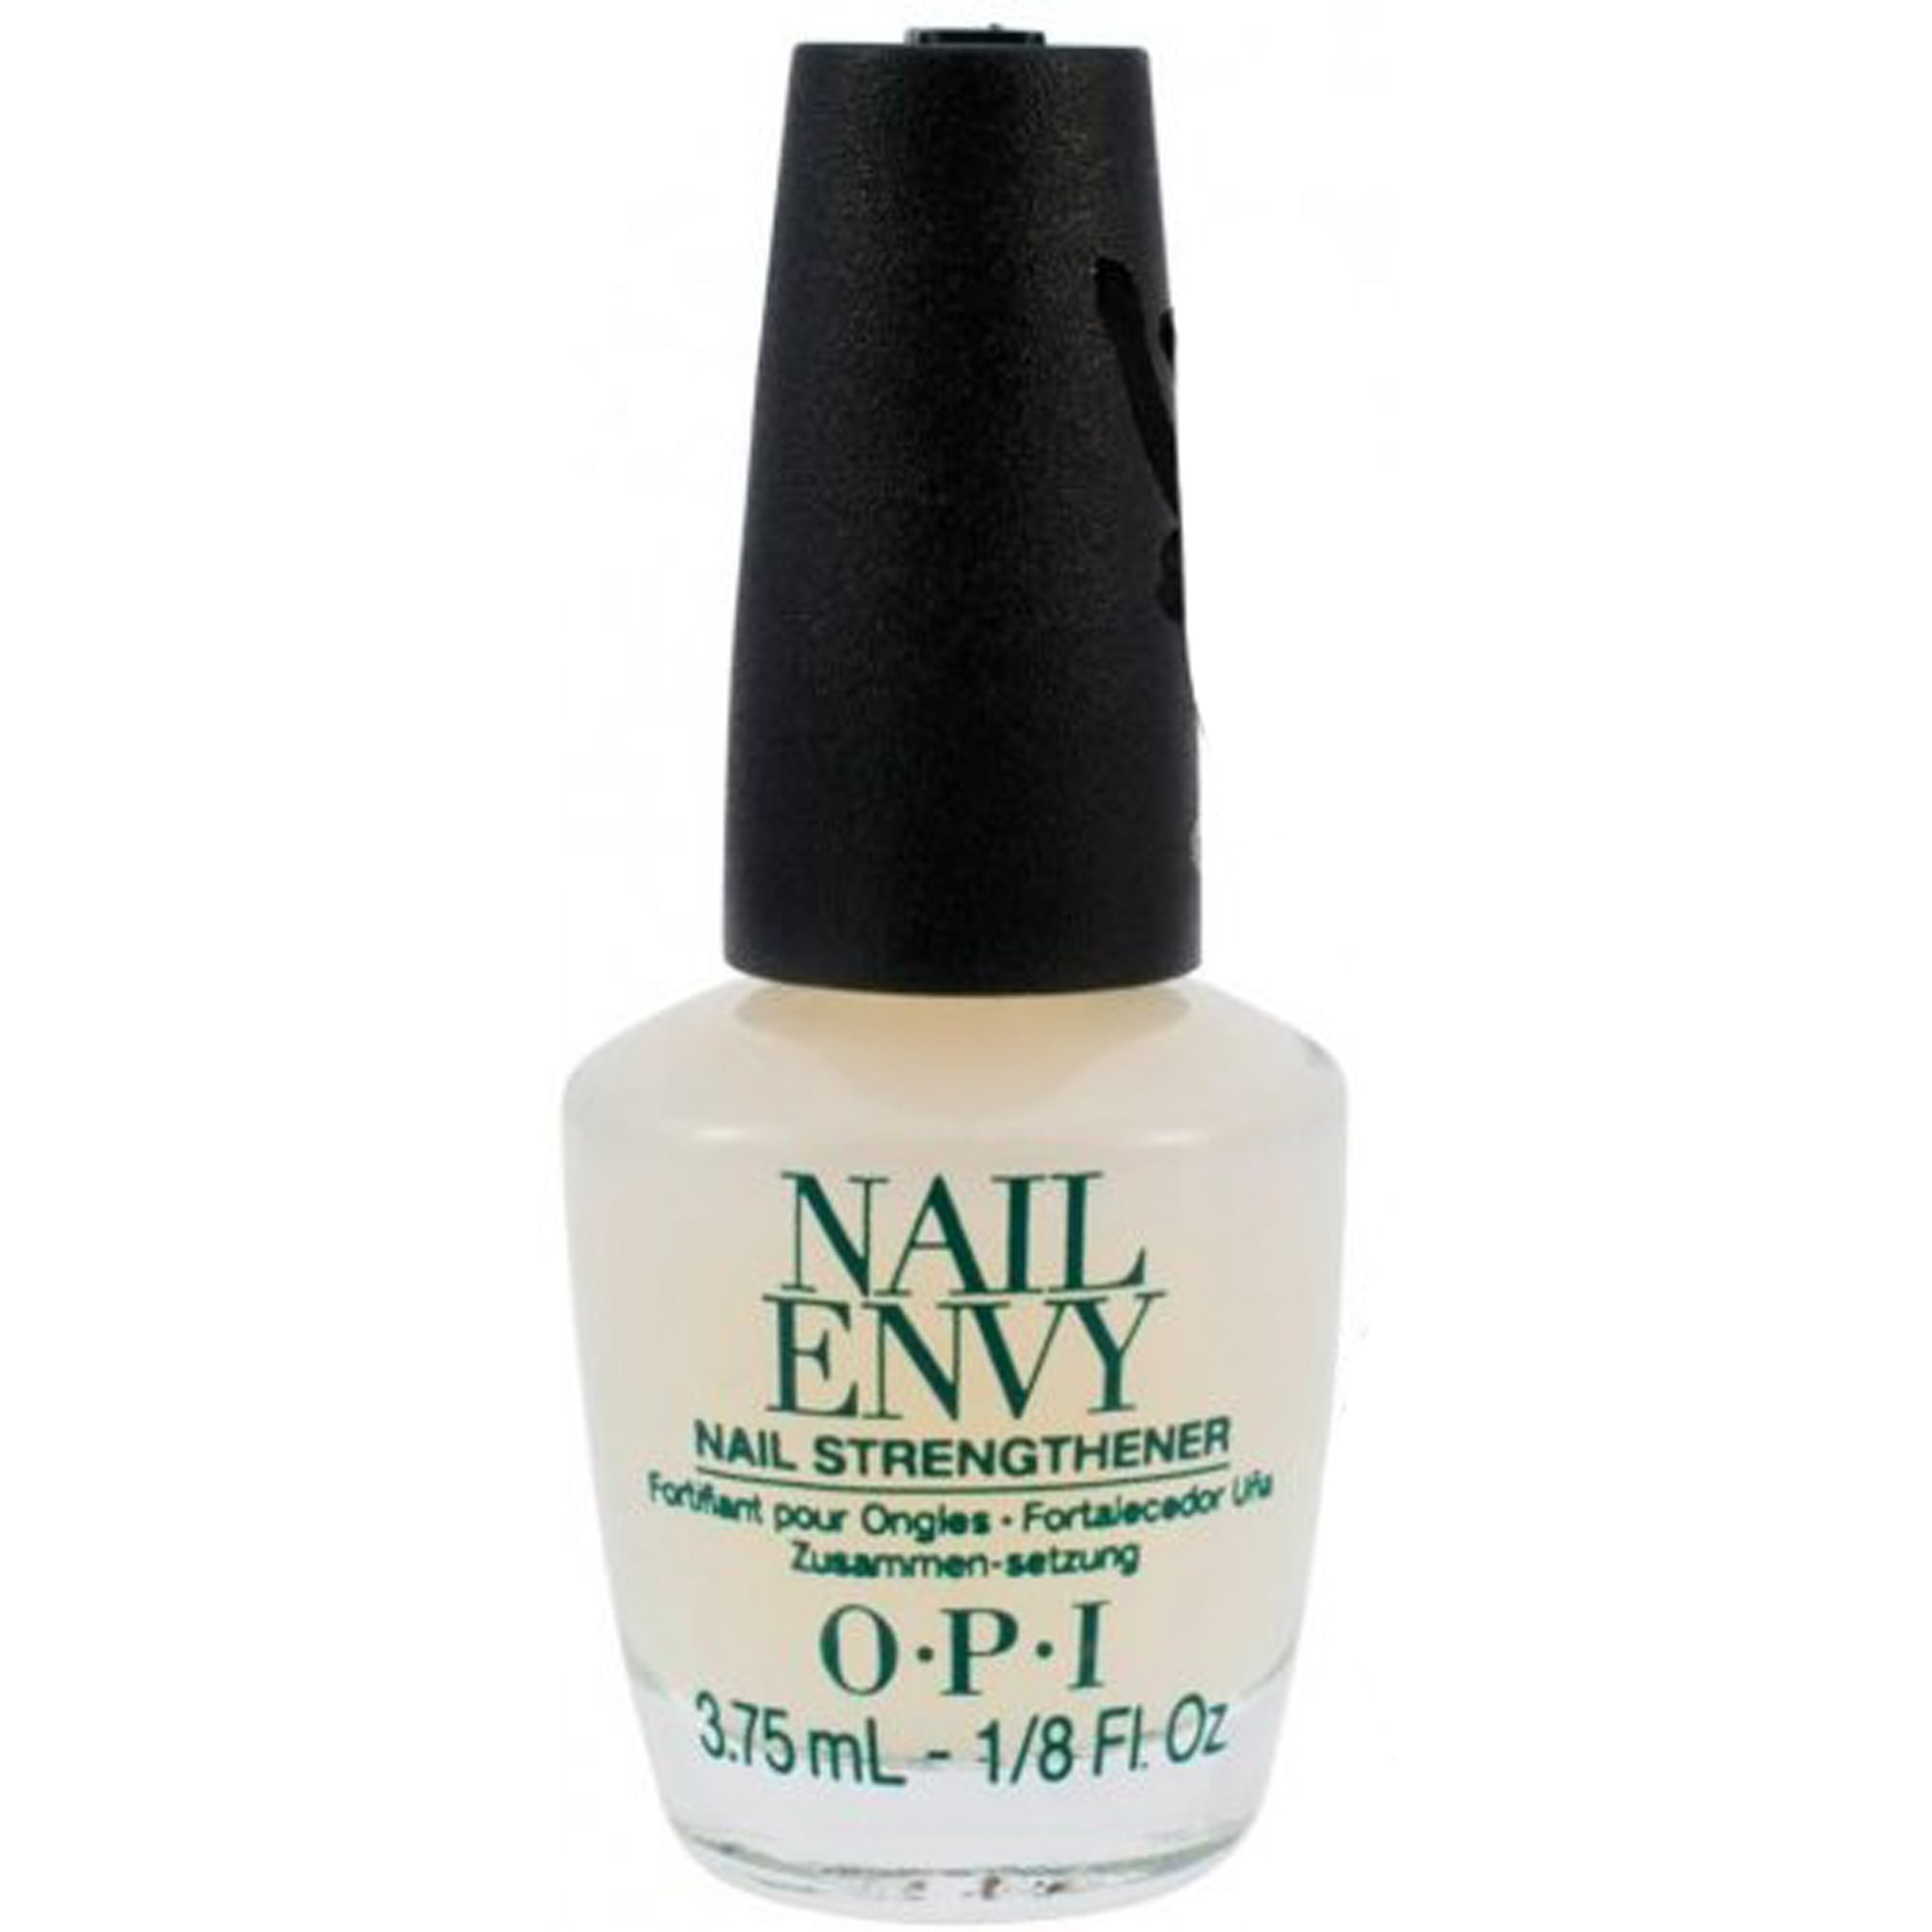 OPI Nail Strengthener Nail Envy Original Formula (Maximum Strength)